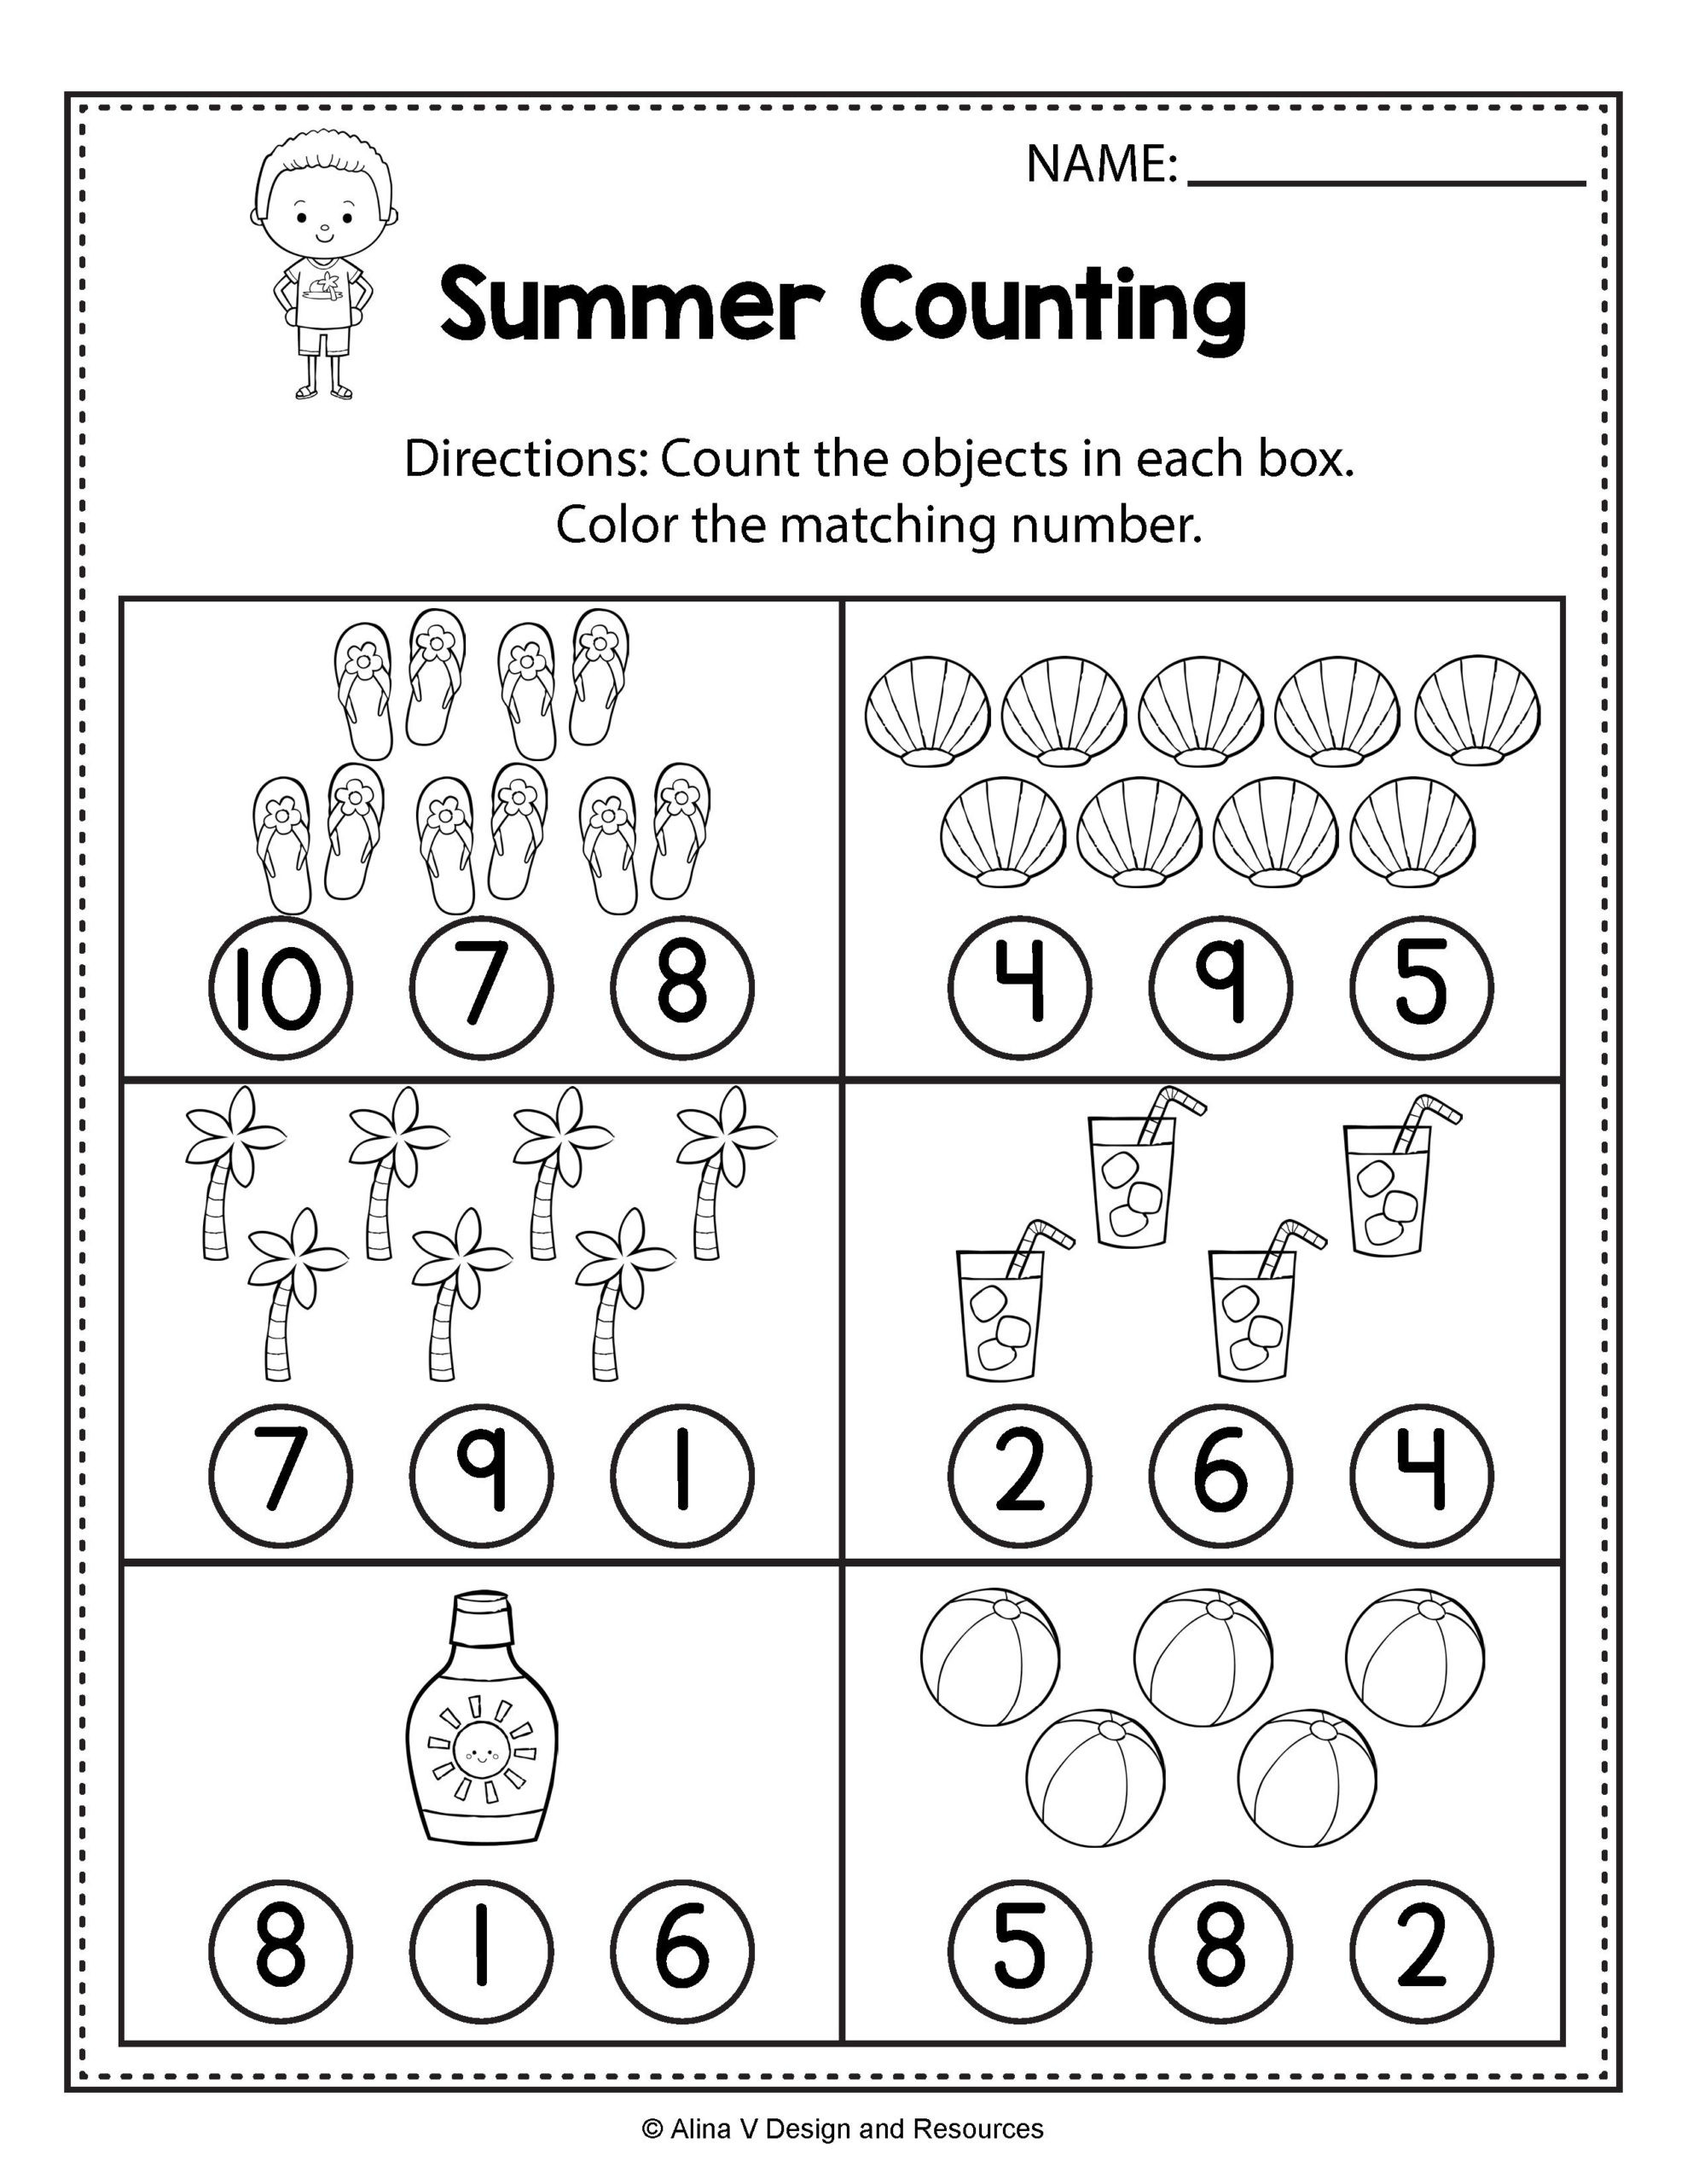 5th Grade Science Practice Worksheets Monthly Archives July 2020 Page 2 5th Grade Reading